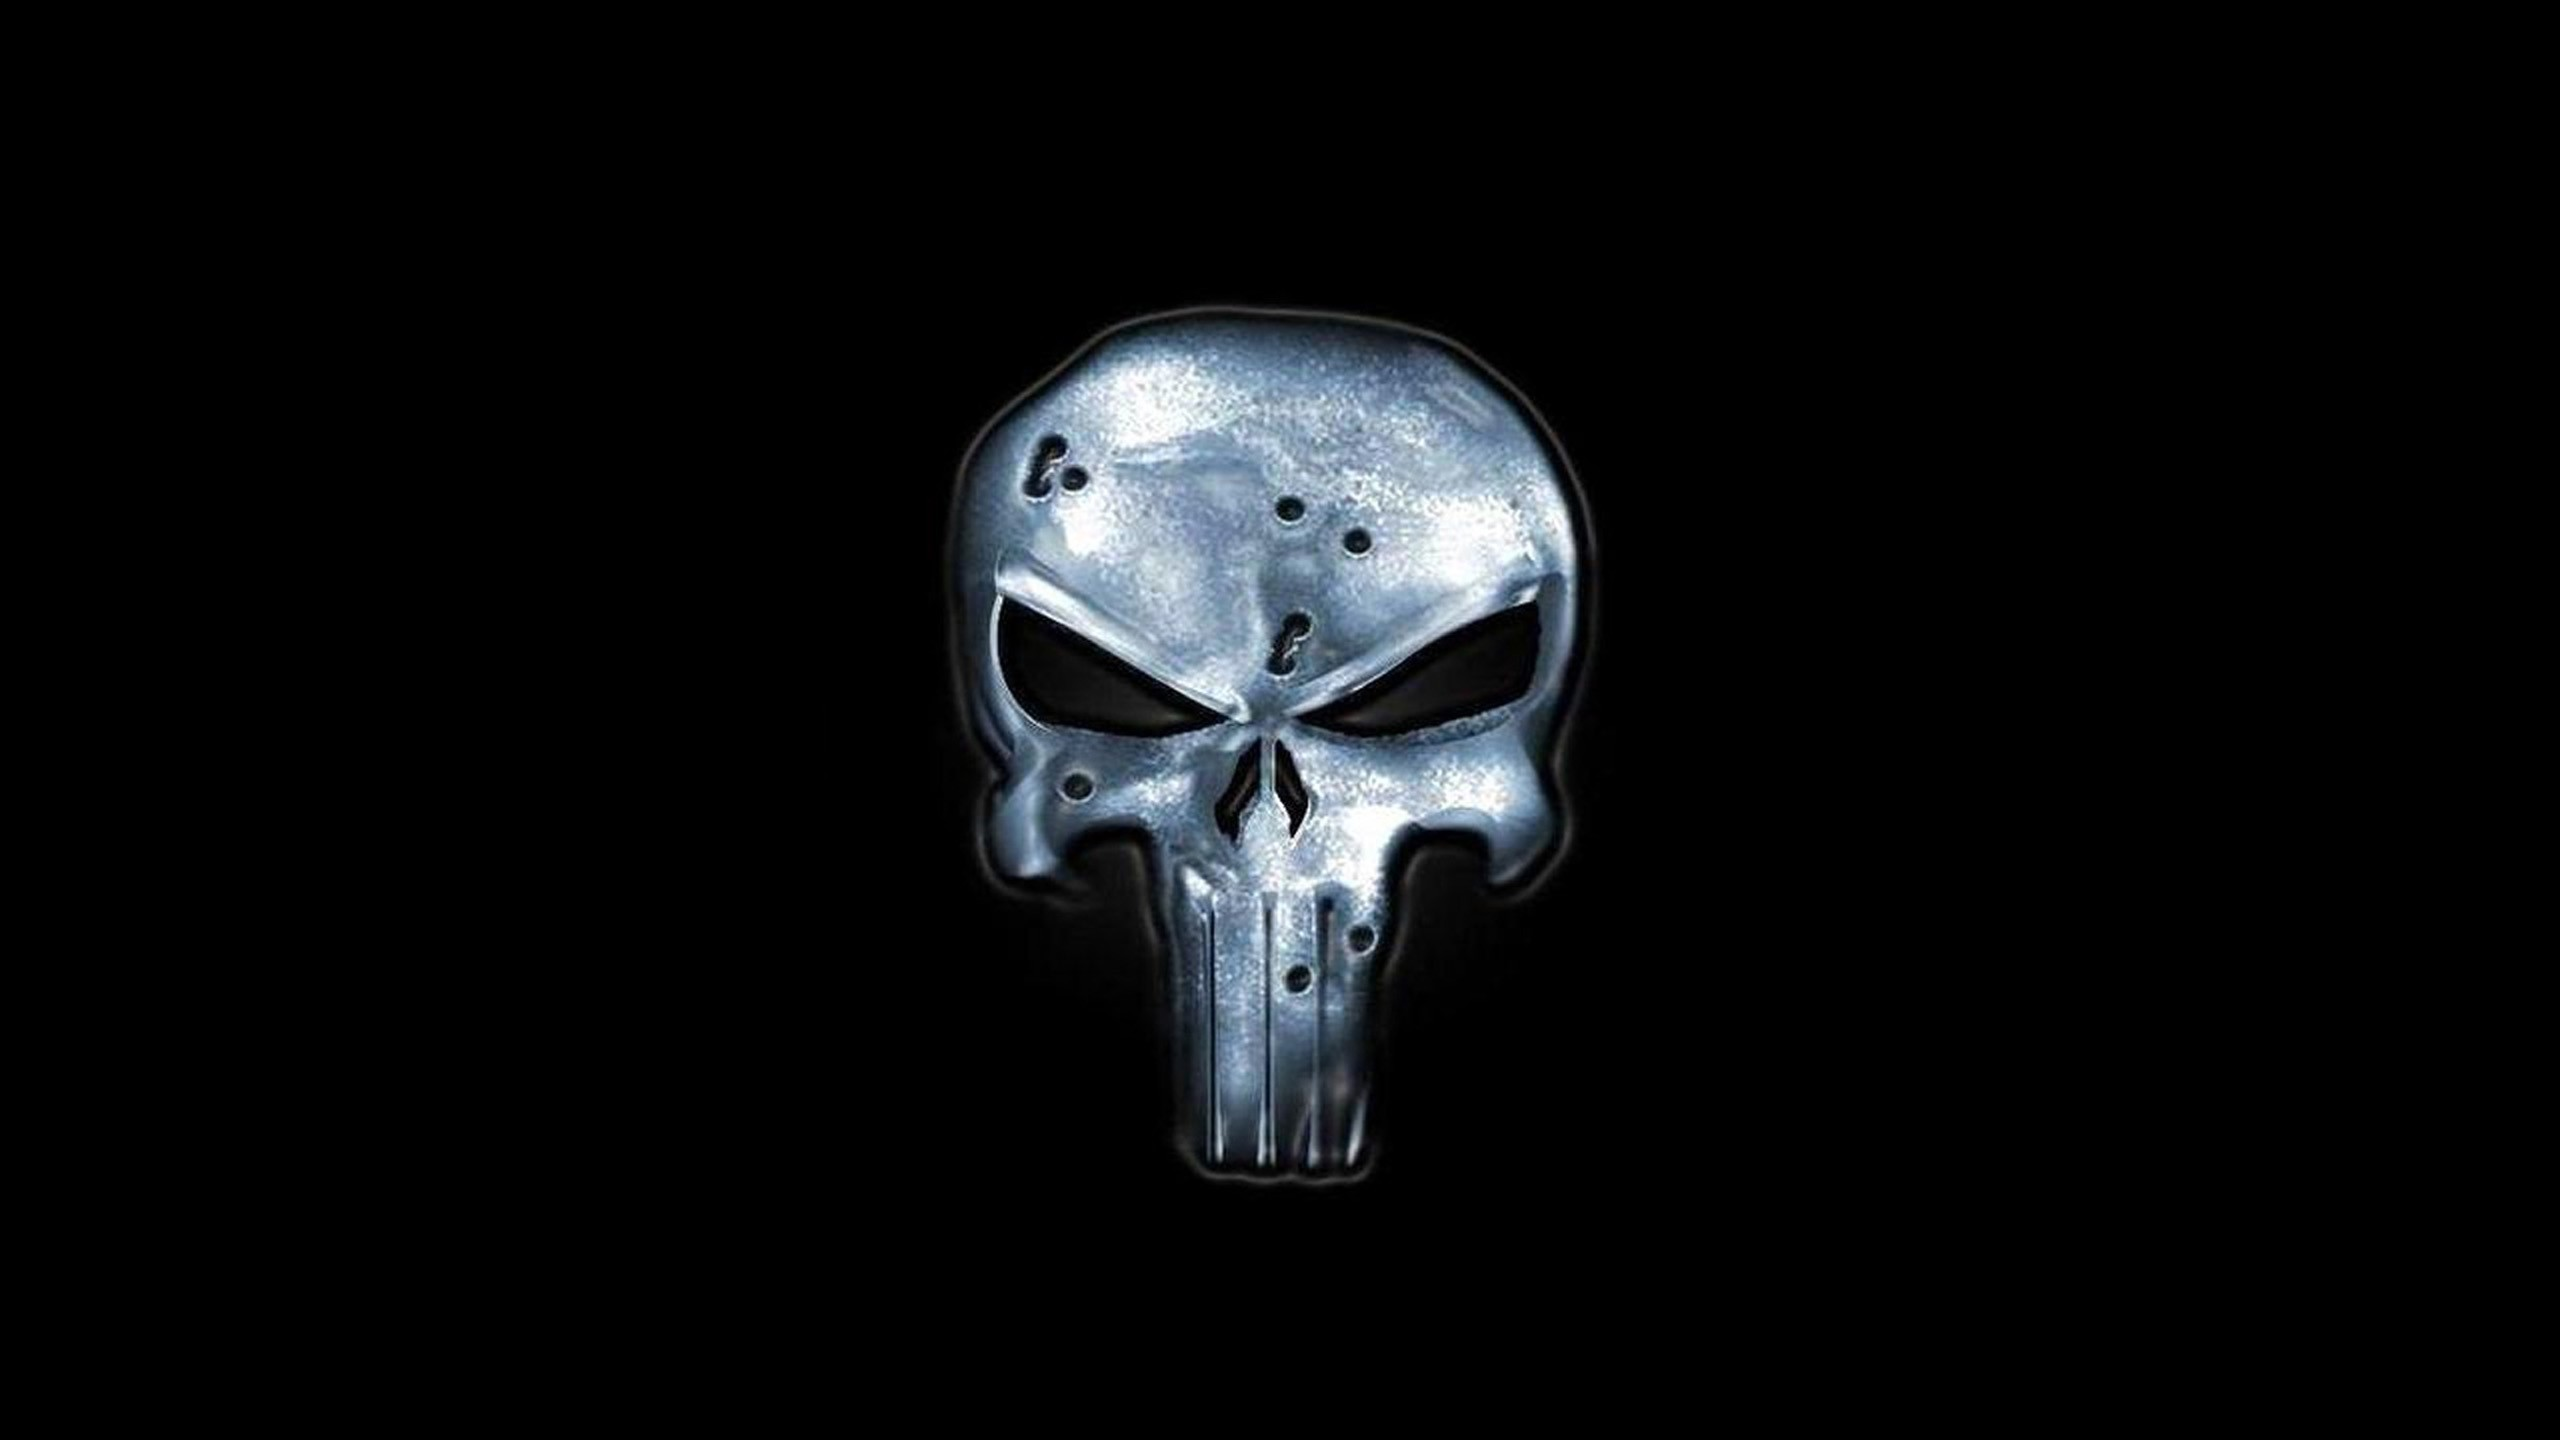 Res: 2560x1440, American Flag Punisher Skull Wallpaper 46